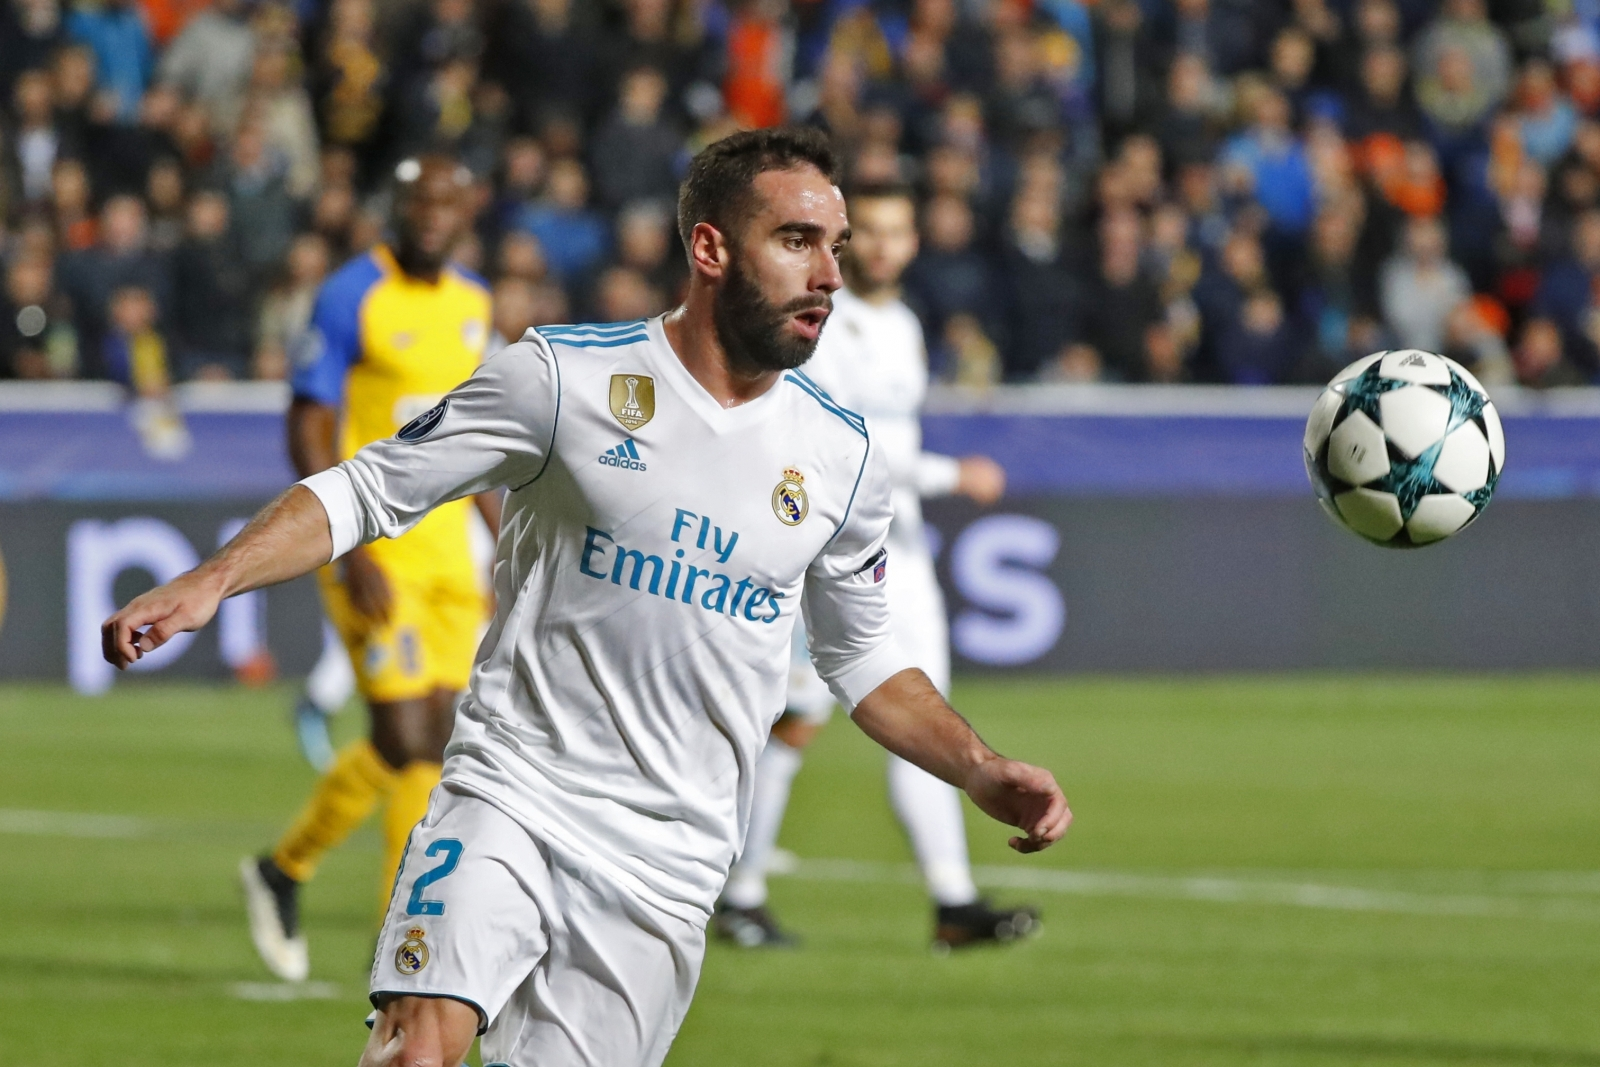 Real Madrid's Dani Carvajal facing two-game UEFA ban